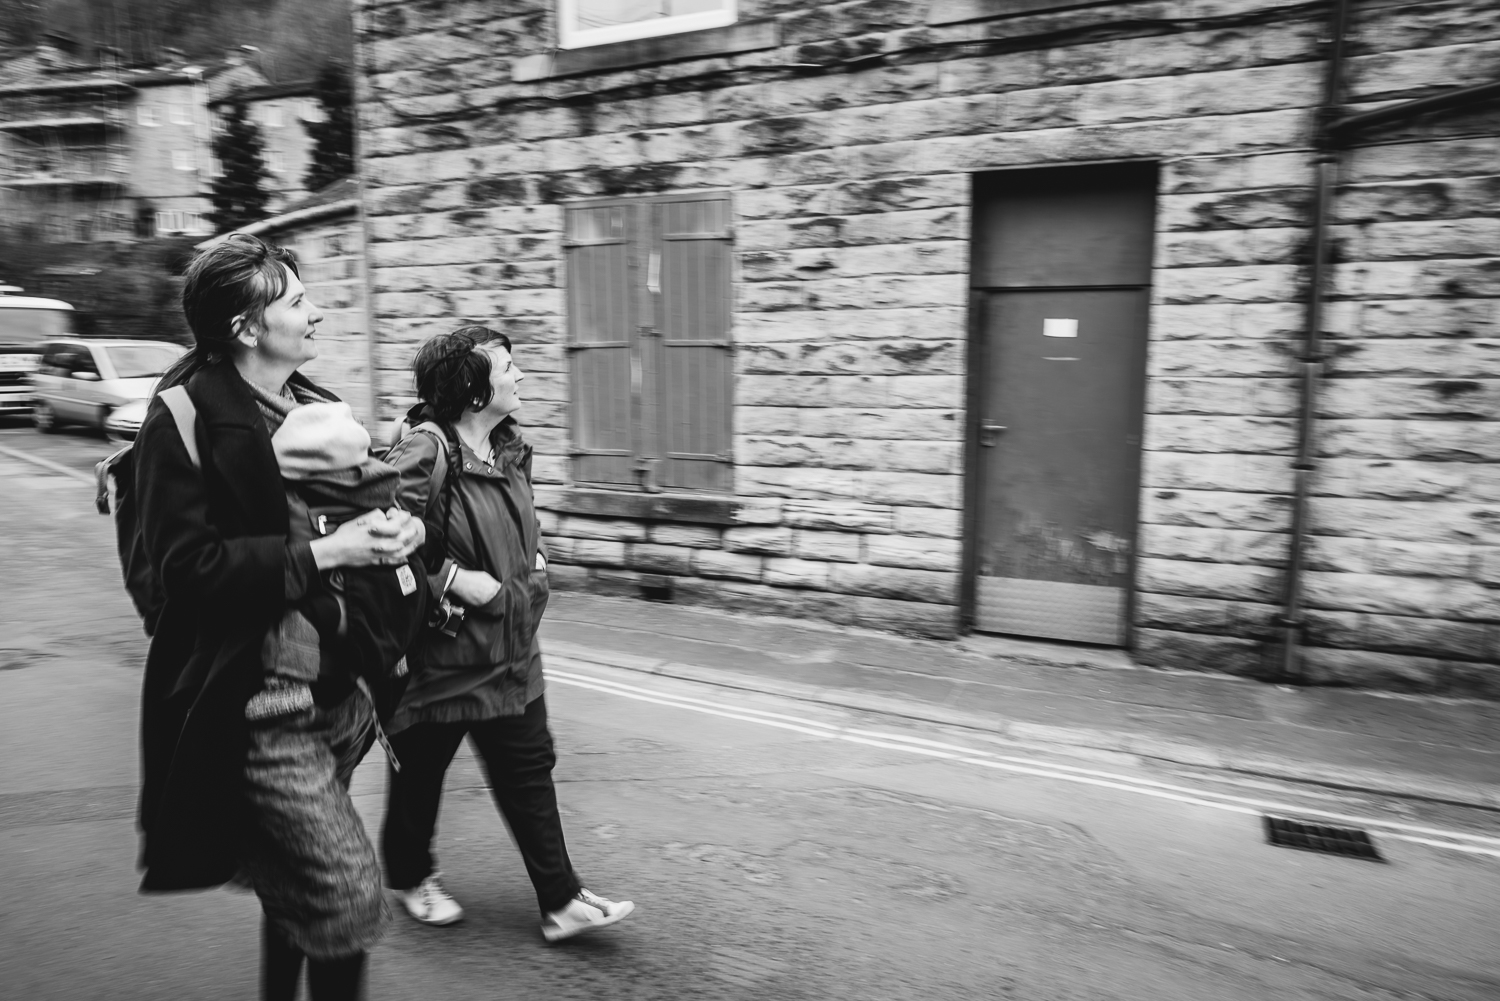 Black and white photography of a family walking past an old buil